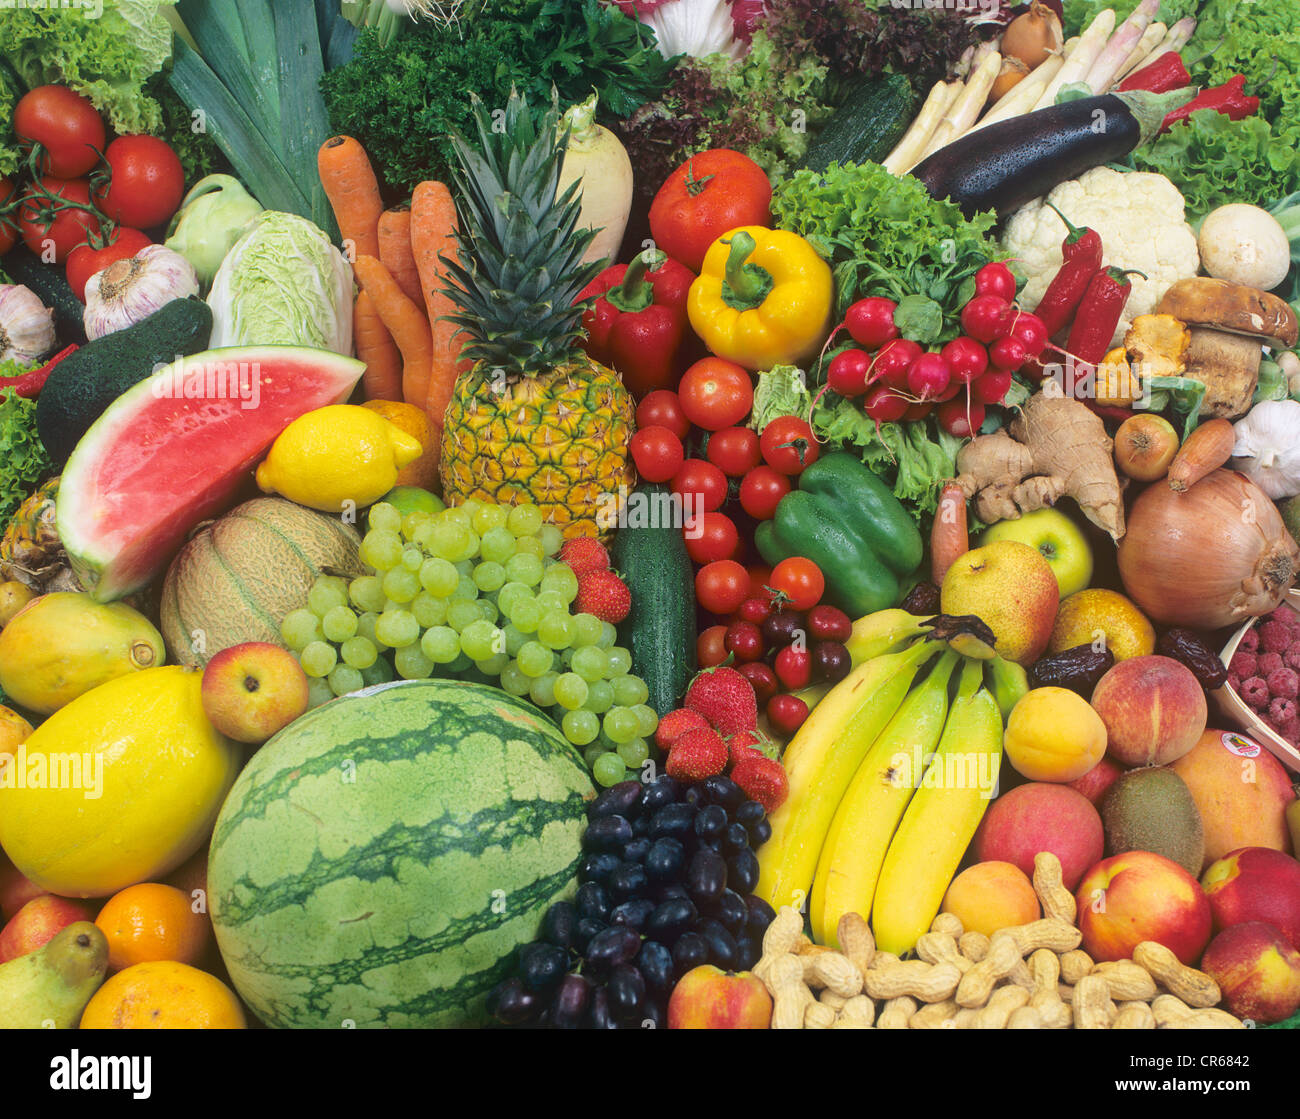 Fruits and vegetables, colourful mix - Stock Image